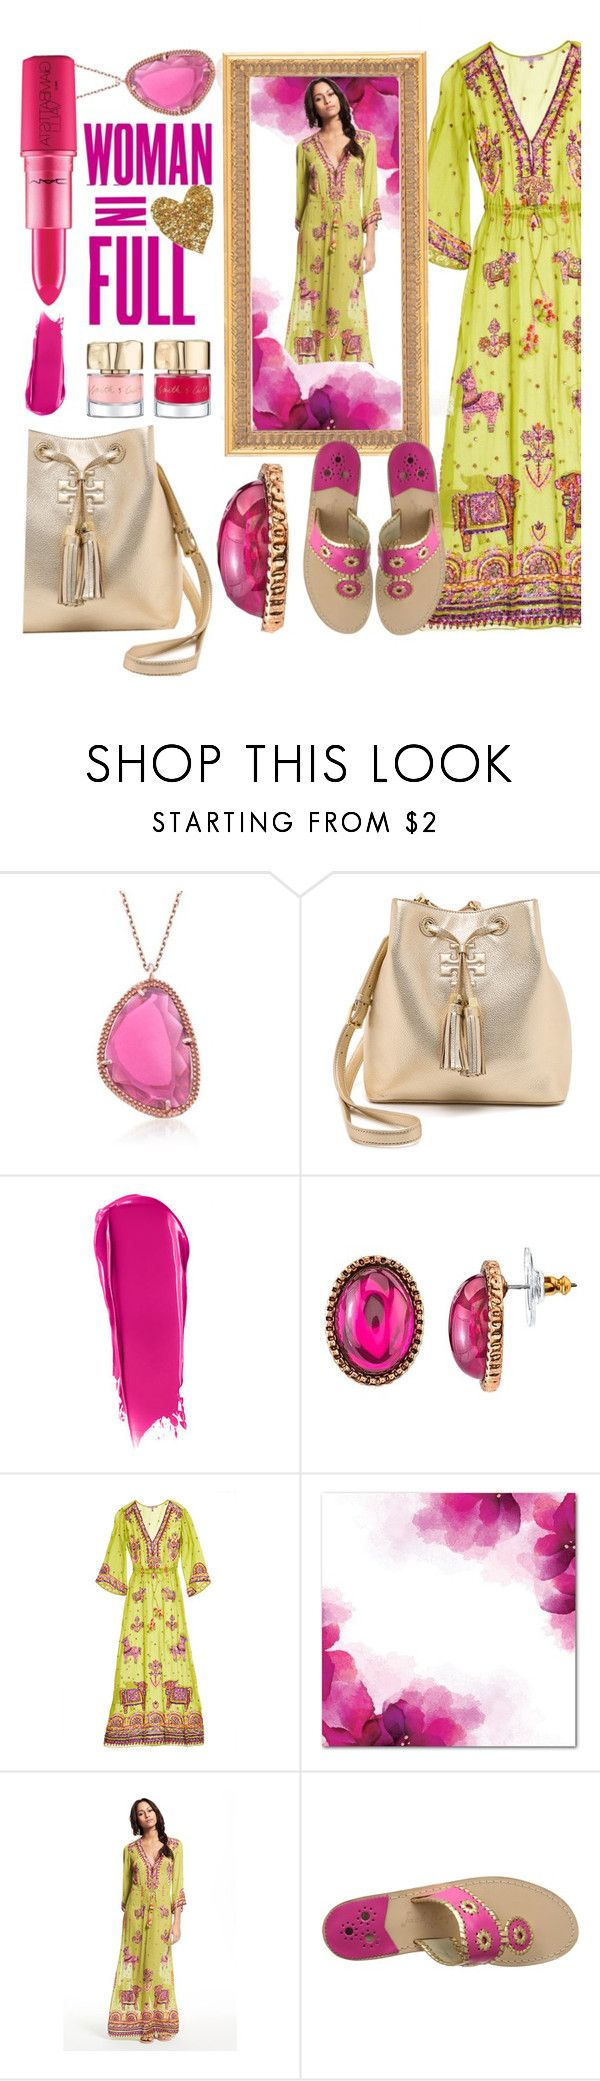 #Embroidery&Sequins  #HandEmbellished #Chiffon&Silk  #MaxiDress by prigaut on Polyvore featuring Calypso St. Barth, Jack Rogers, Tory Burch, 1928, Ross-Simons, NARS Cosmetics and KAROLINA